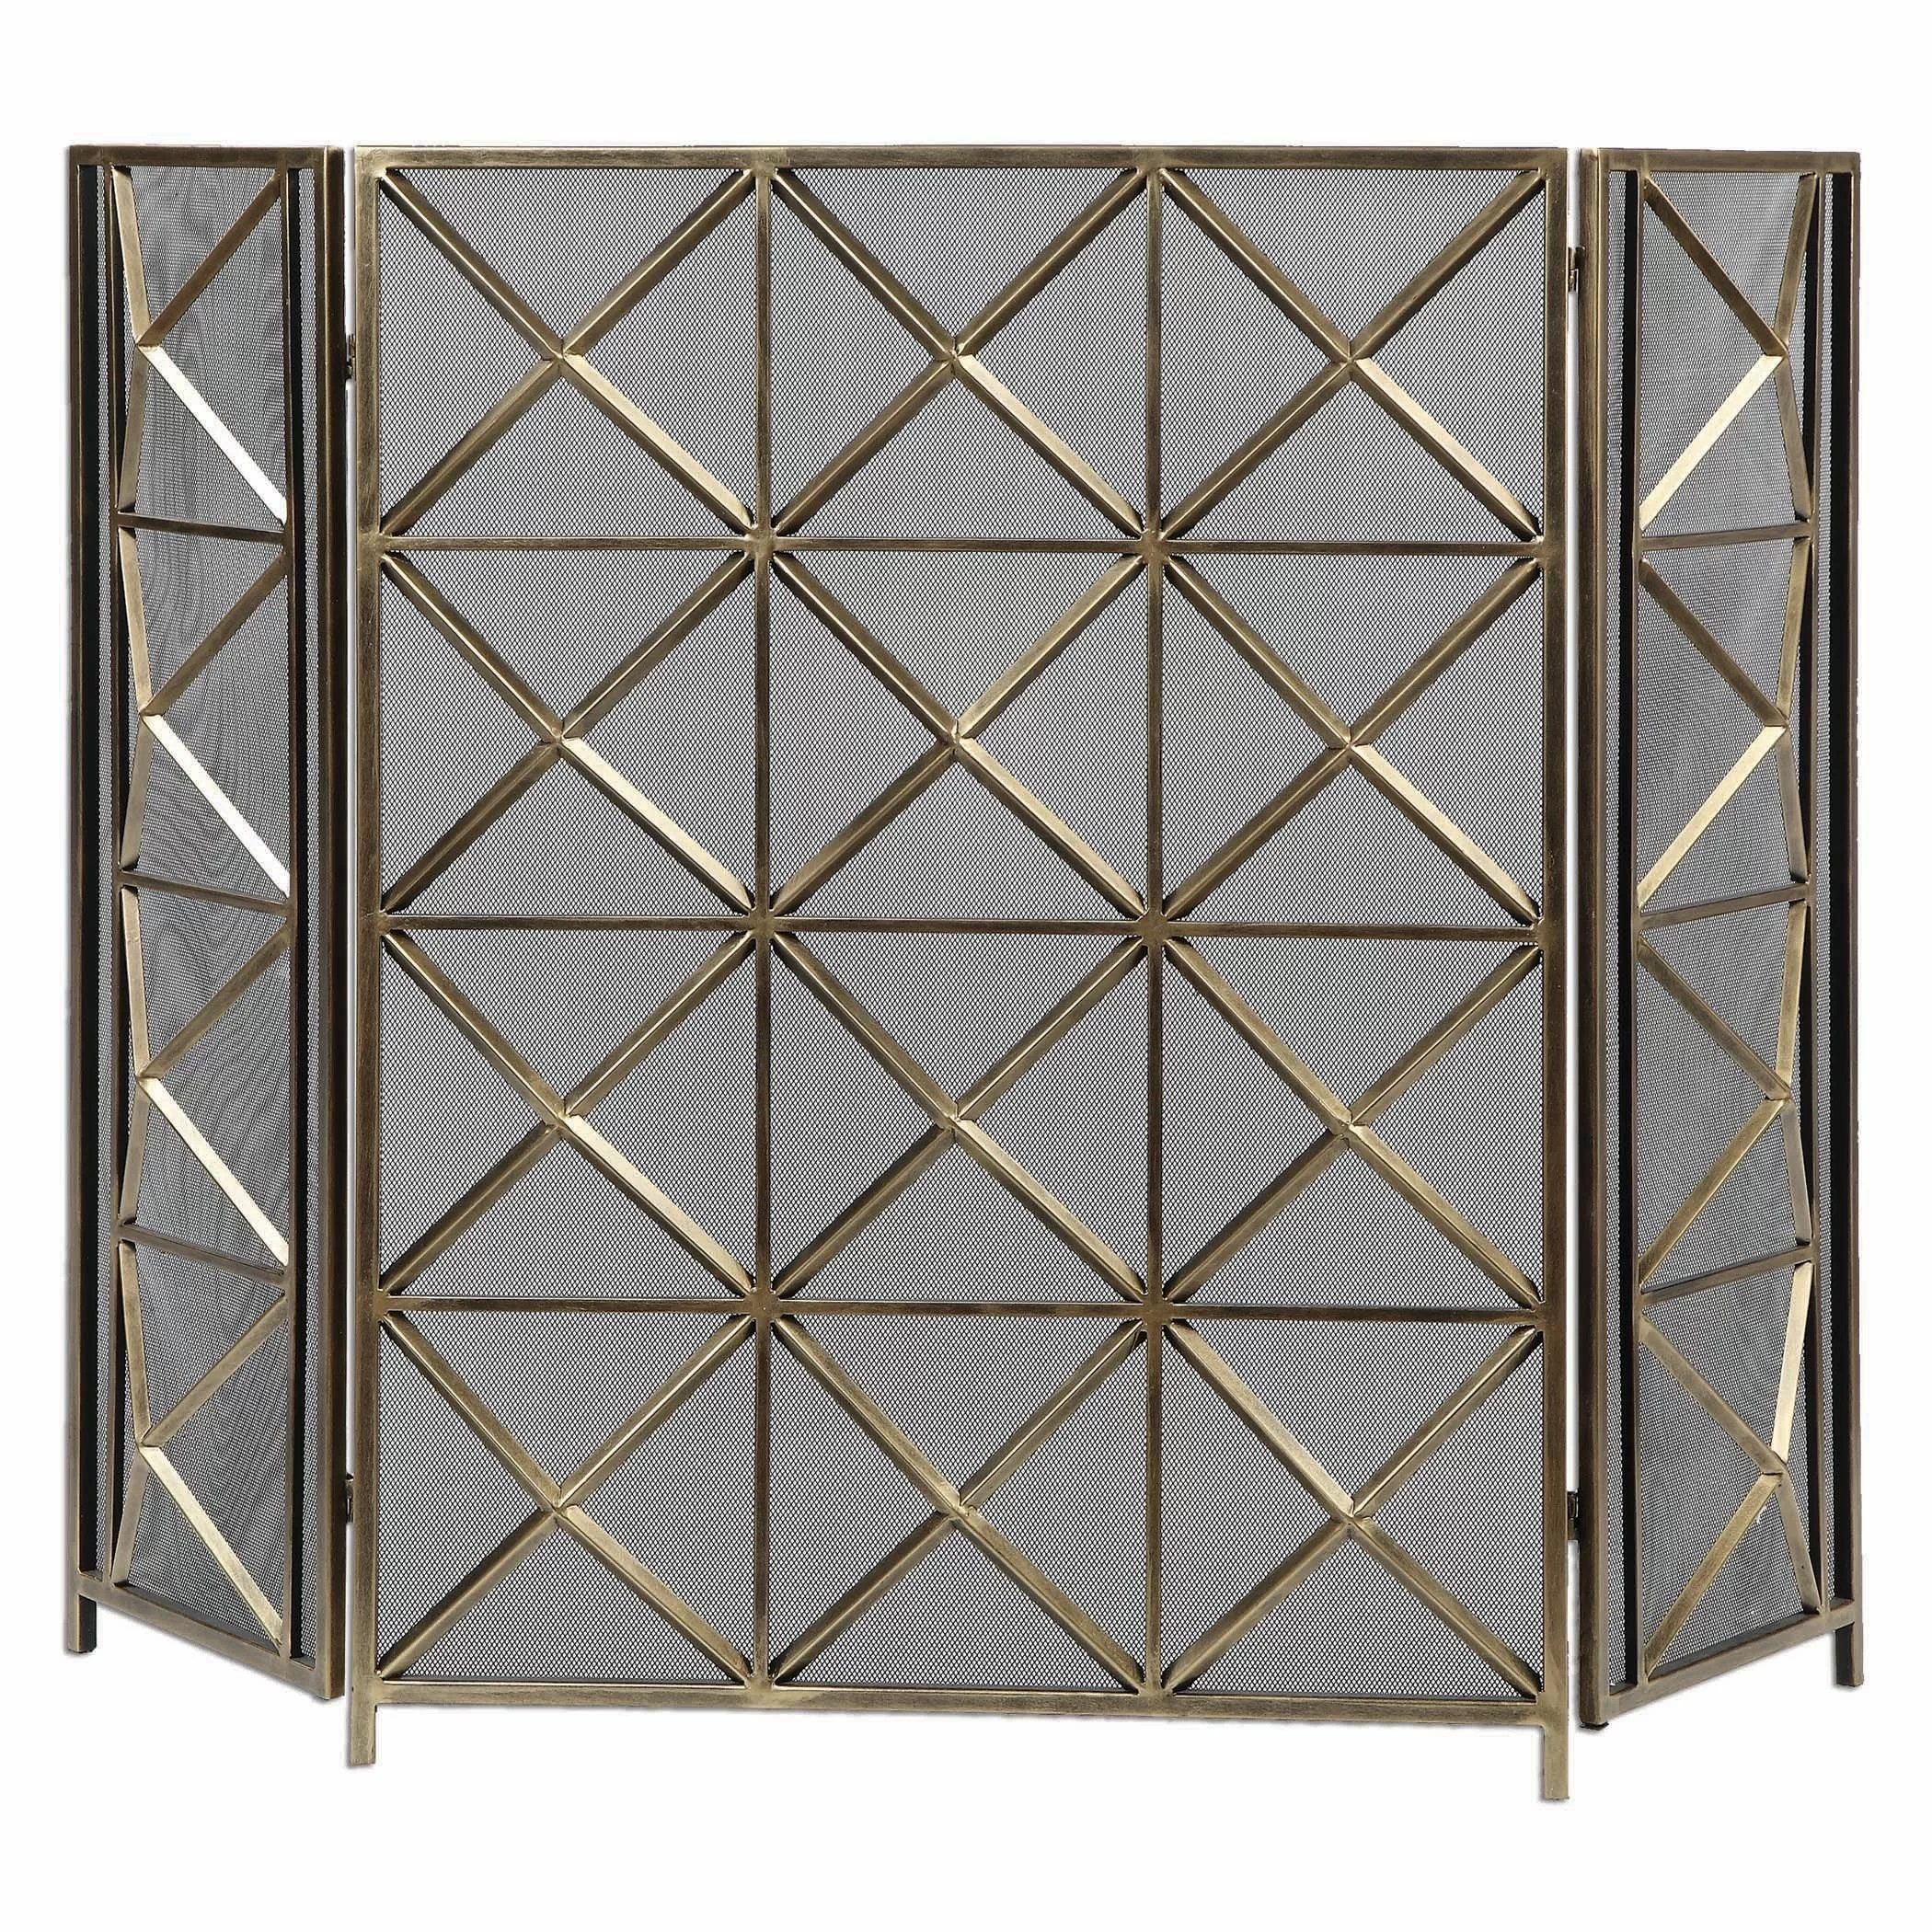 Uttermost Akiva 3 Panel Metal Fireplace Screen Amp Reviews